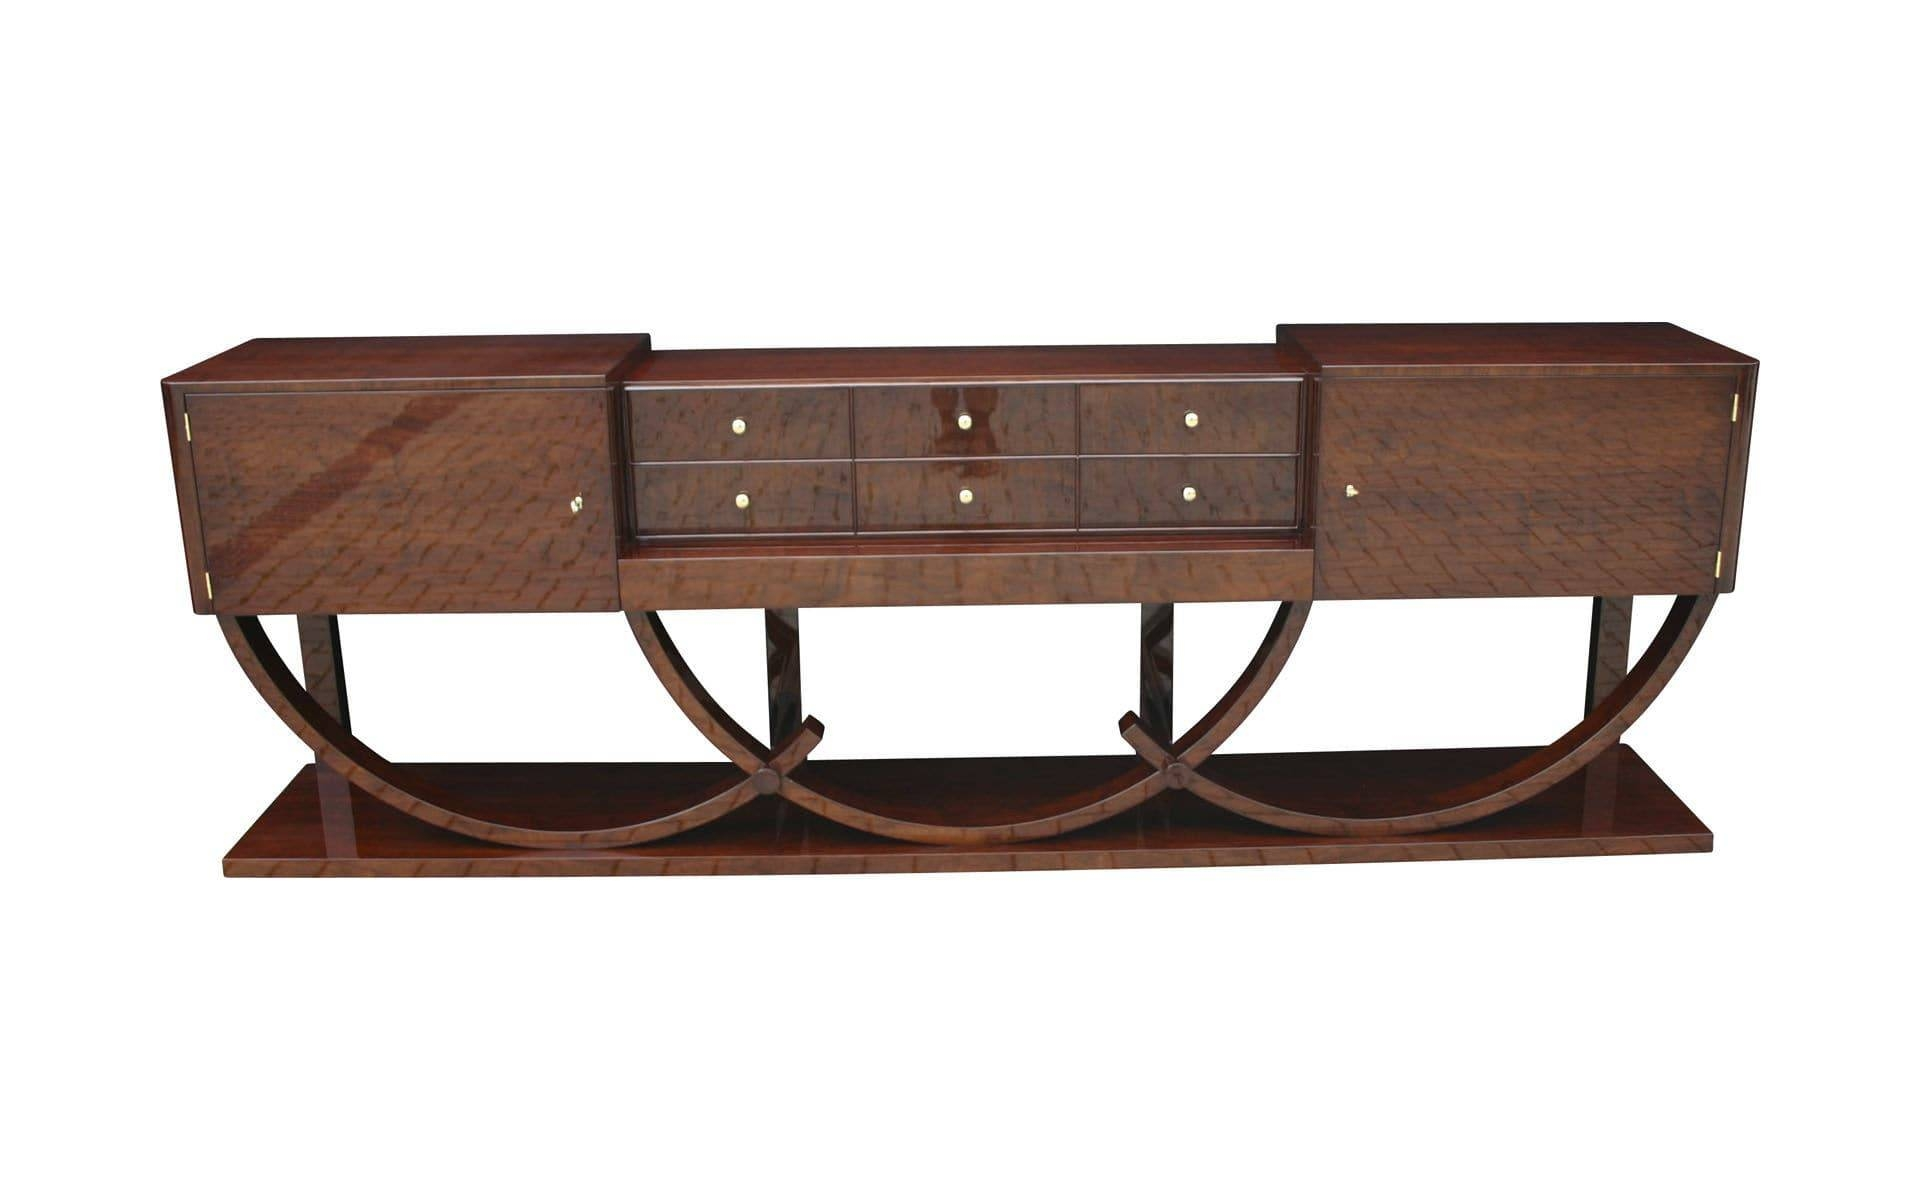 Art Deco Sideboard / Macassar Ebony / Glossy Lacquered Wood With Regard To Most Up To Date Art Deco Sideboards (#2 of 15)